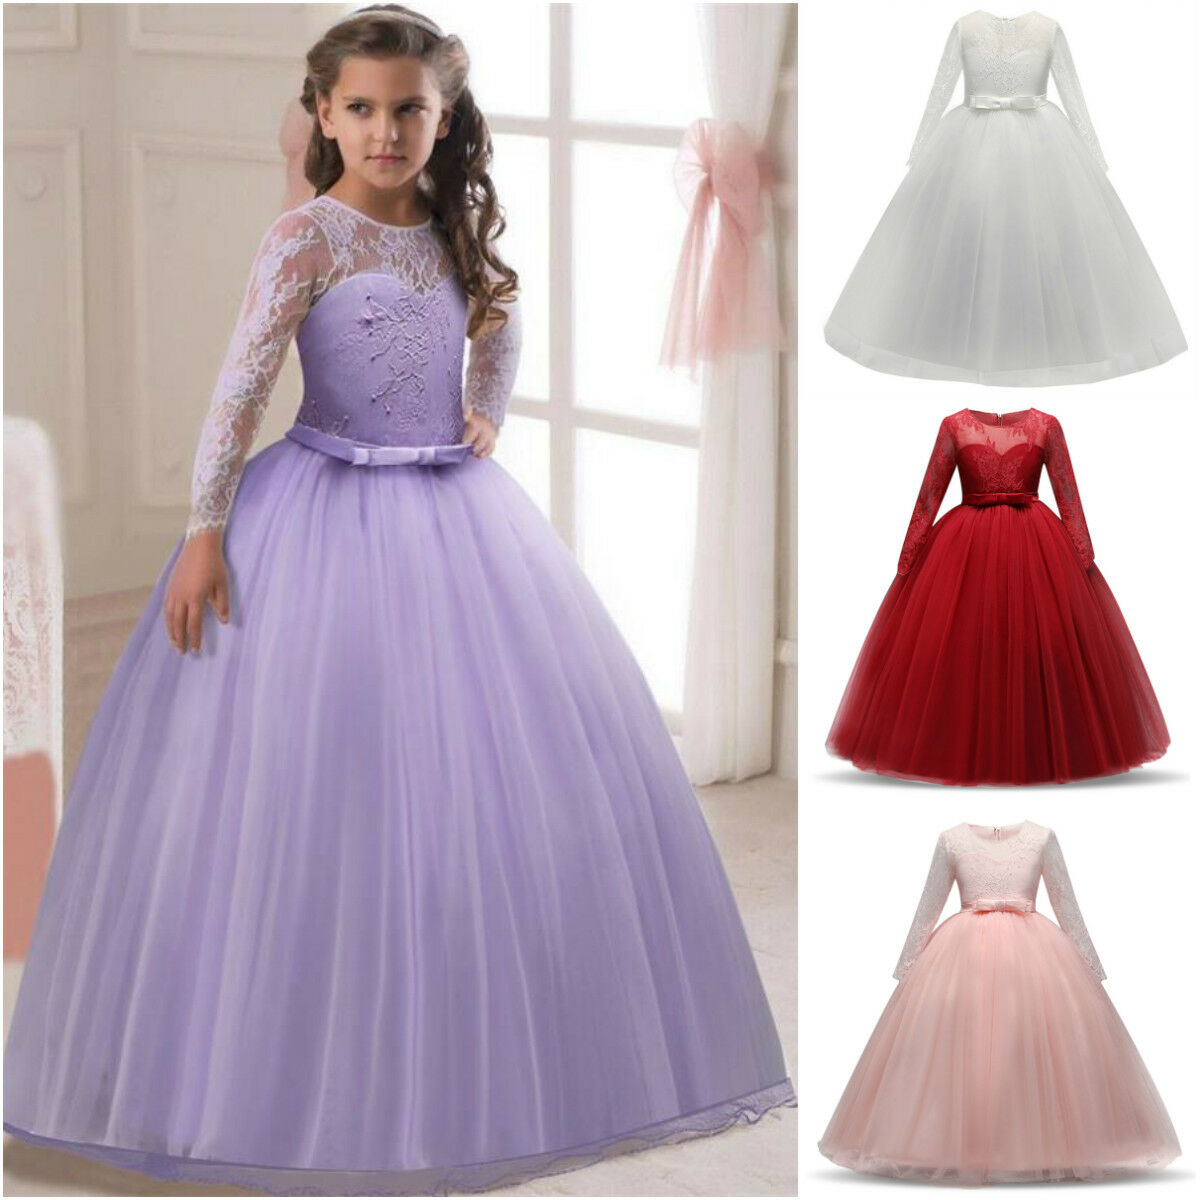 NEW LONG SLEEVE Princess Wedding Girls Dress Tulle Bridesmaid Party ...